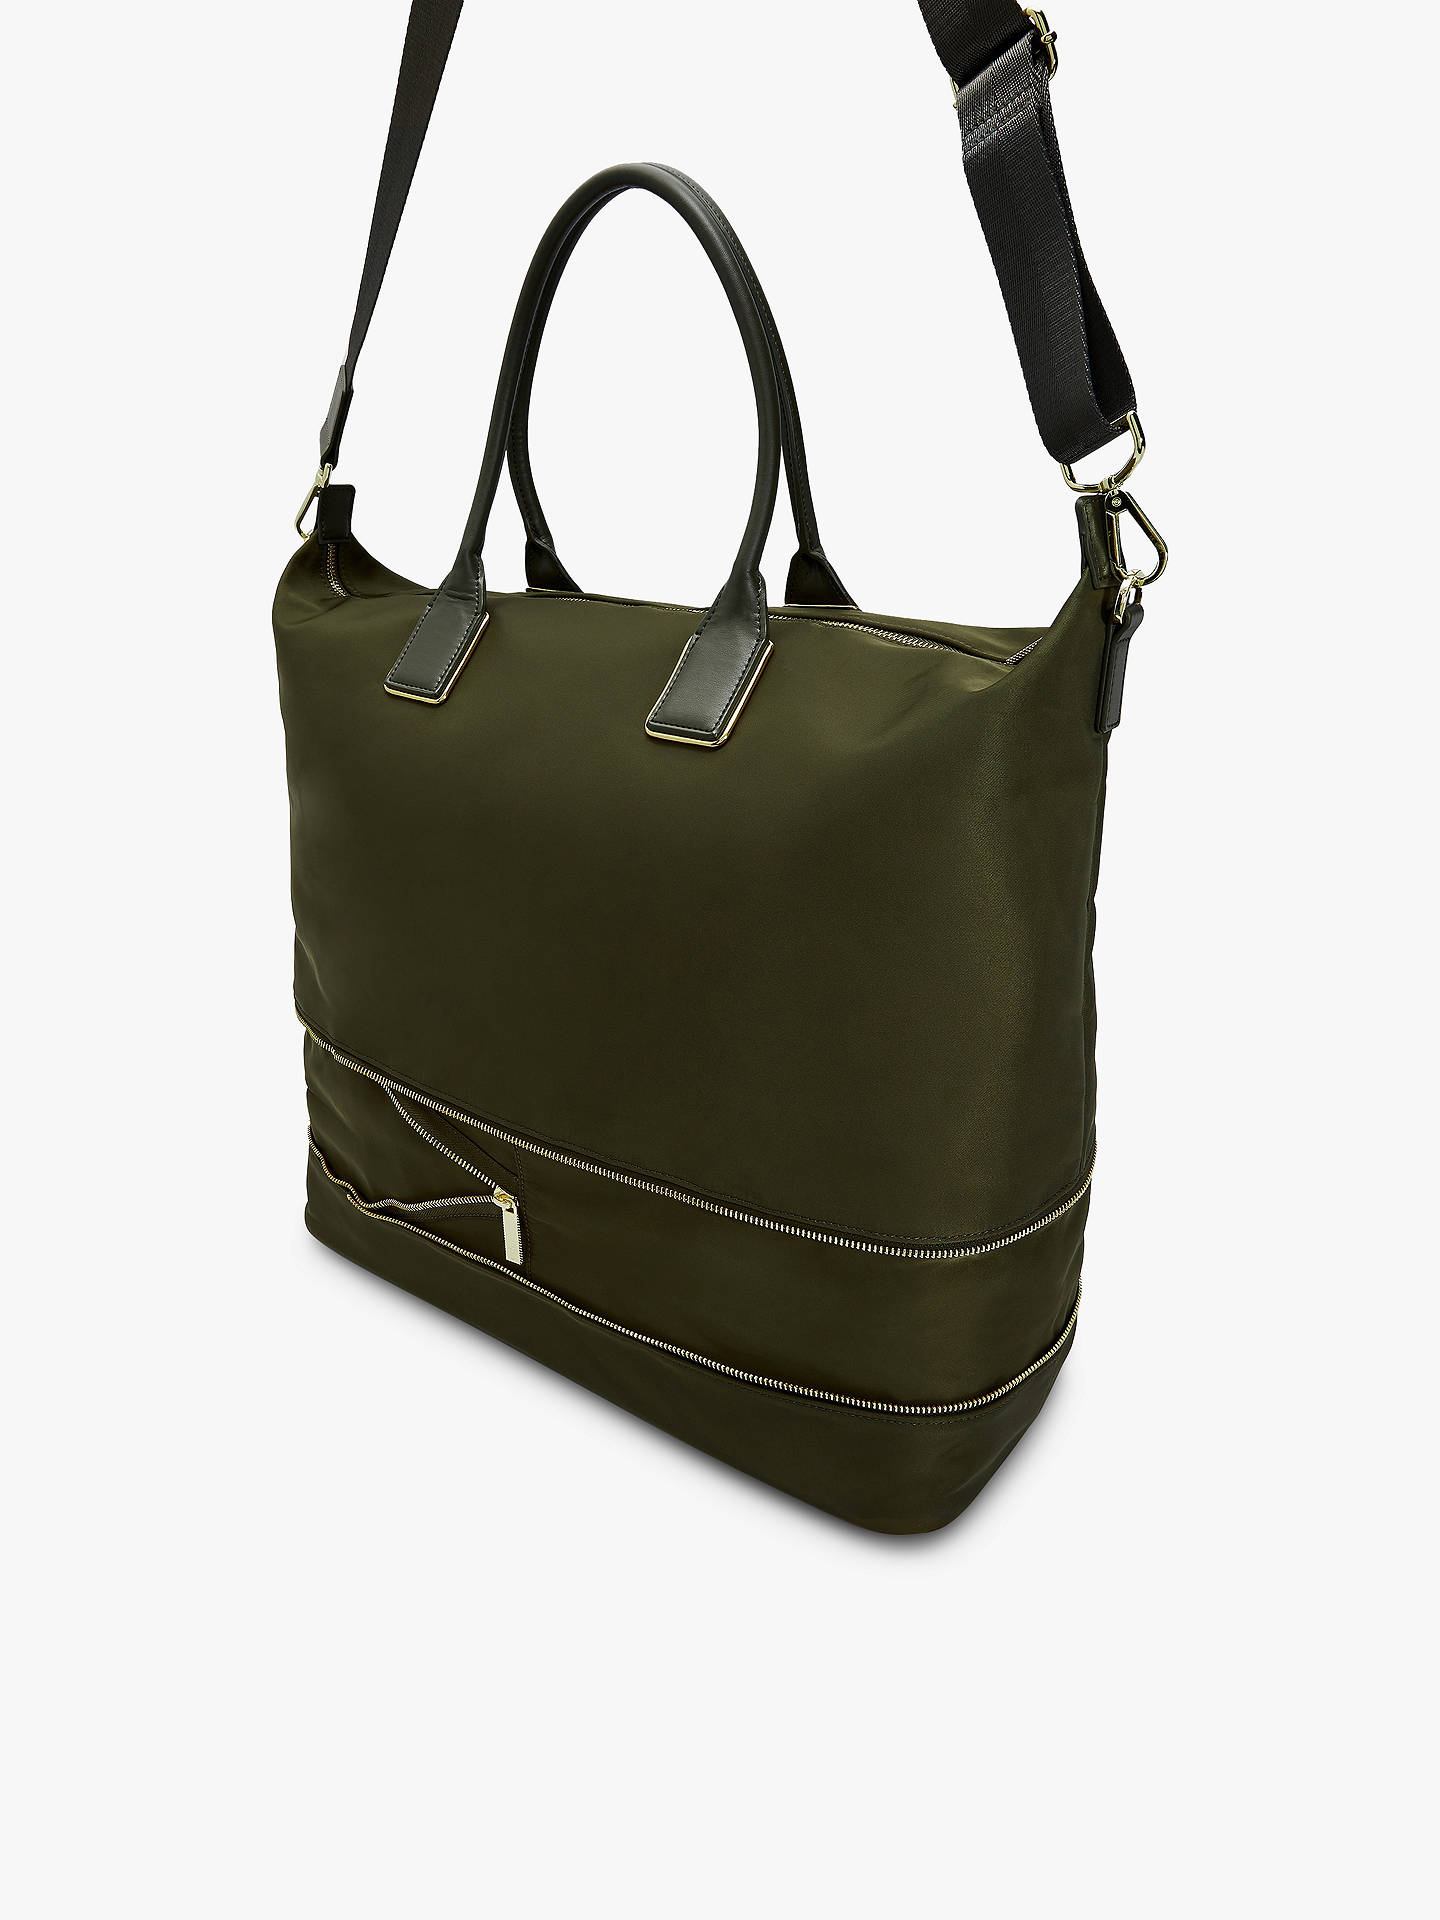 03972a08c5d ... Buy Ted Baker Emiia Expandable Tote Bag, Khaki Online at johnlewis.com  ...